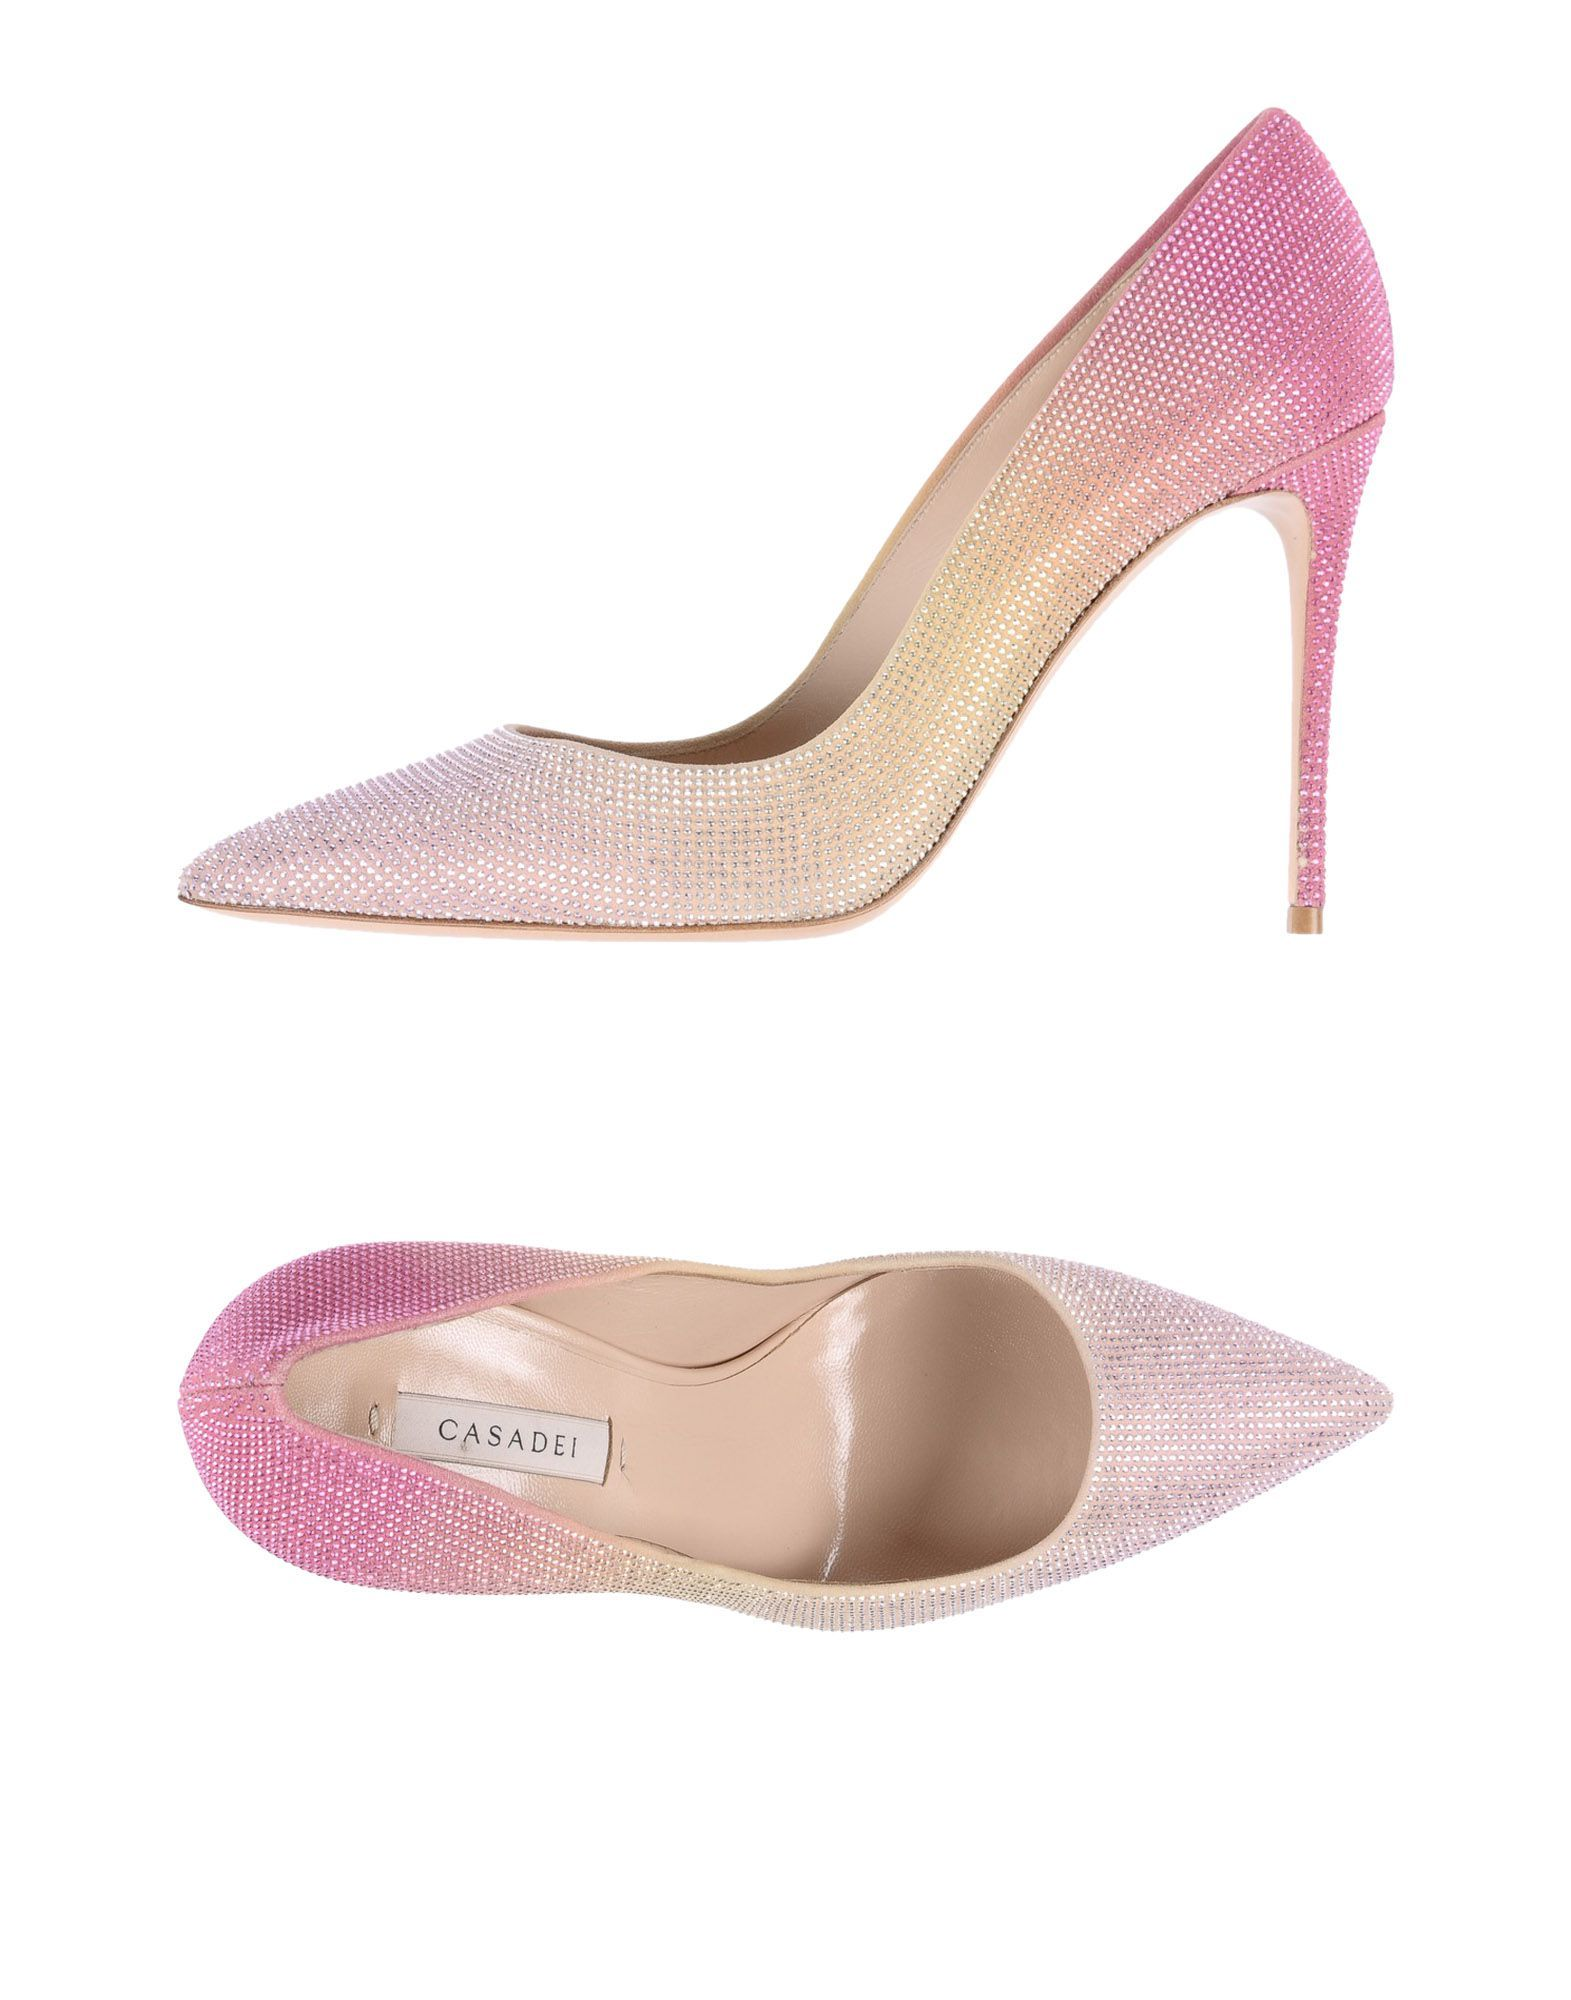 61e7701eaf6 Casadei Pump - Women Casadei Pumps online on YOOX United States - 11510167MF